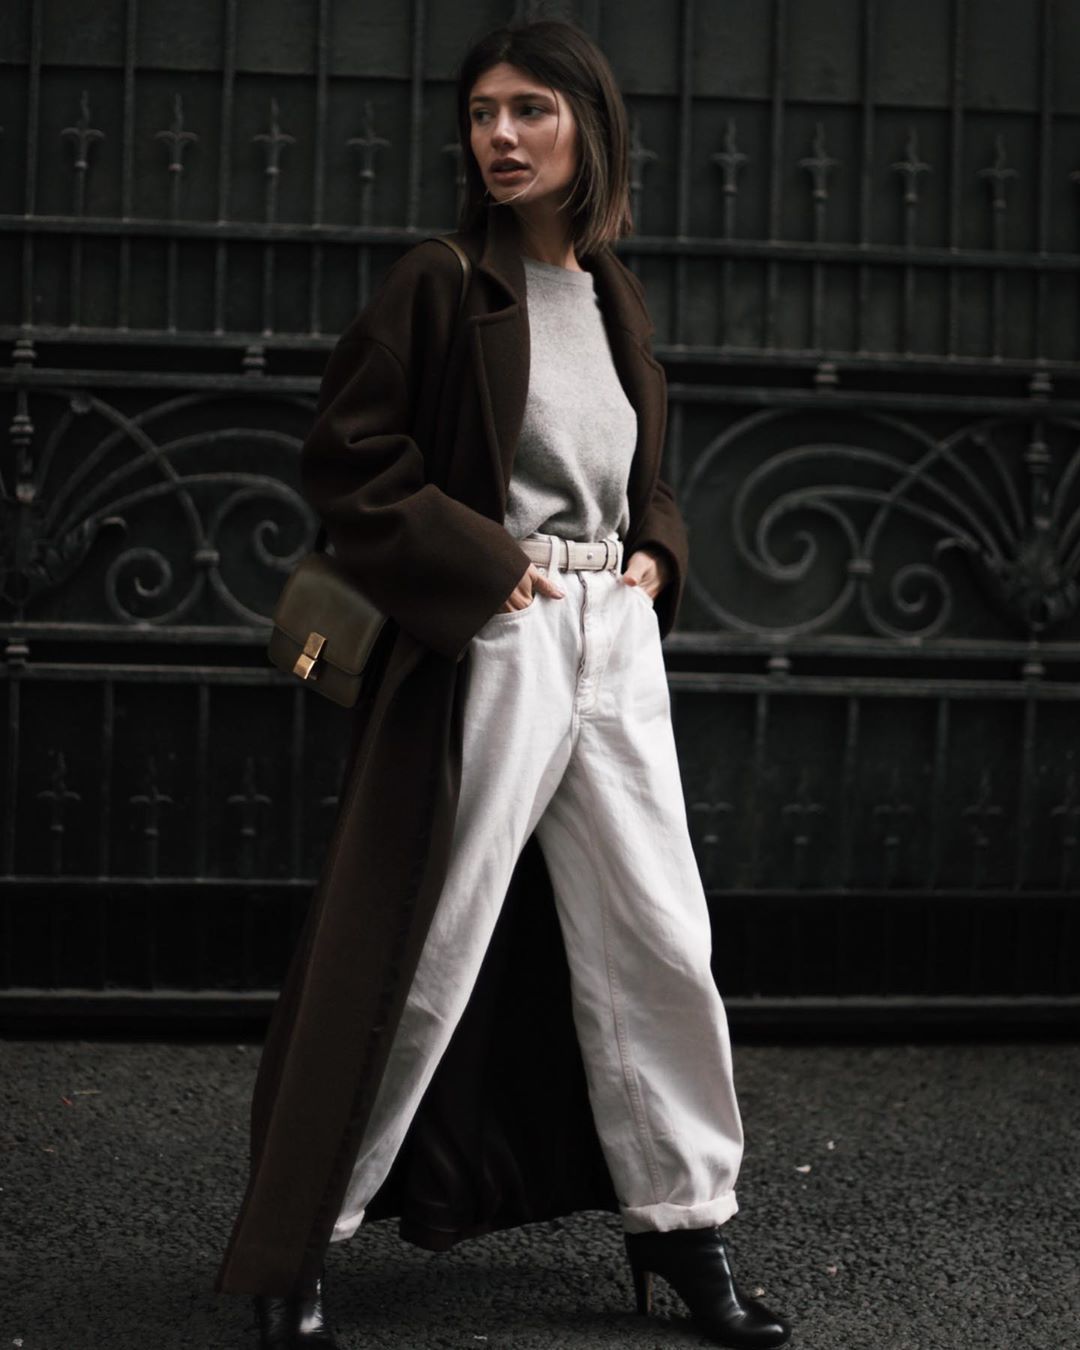 I'm Totally Going to Recreate This Cozy, Elevated Look